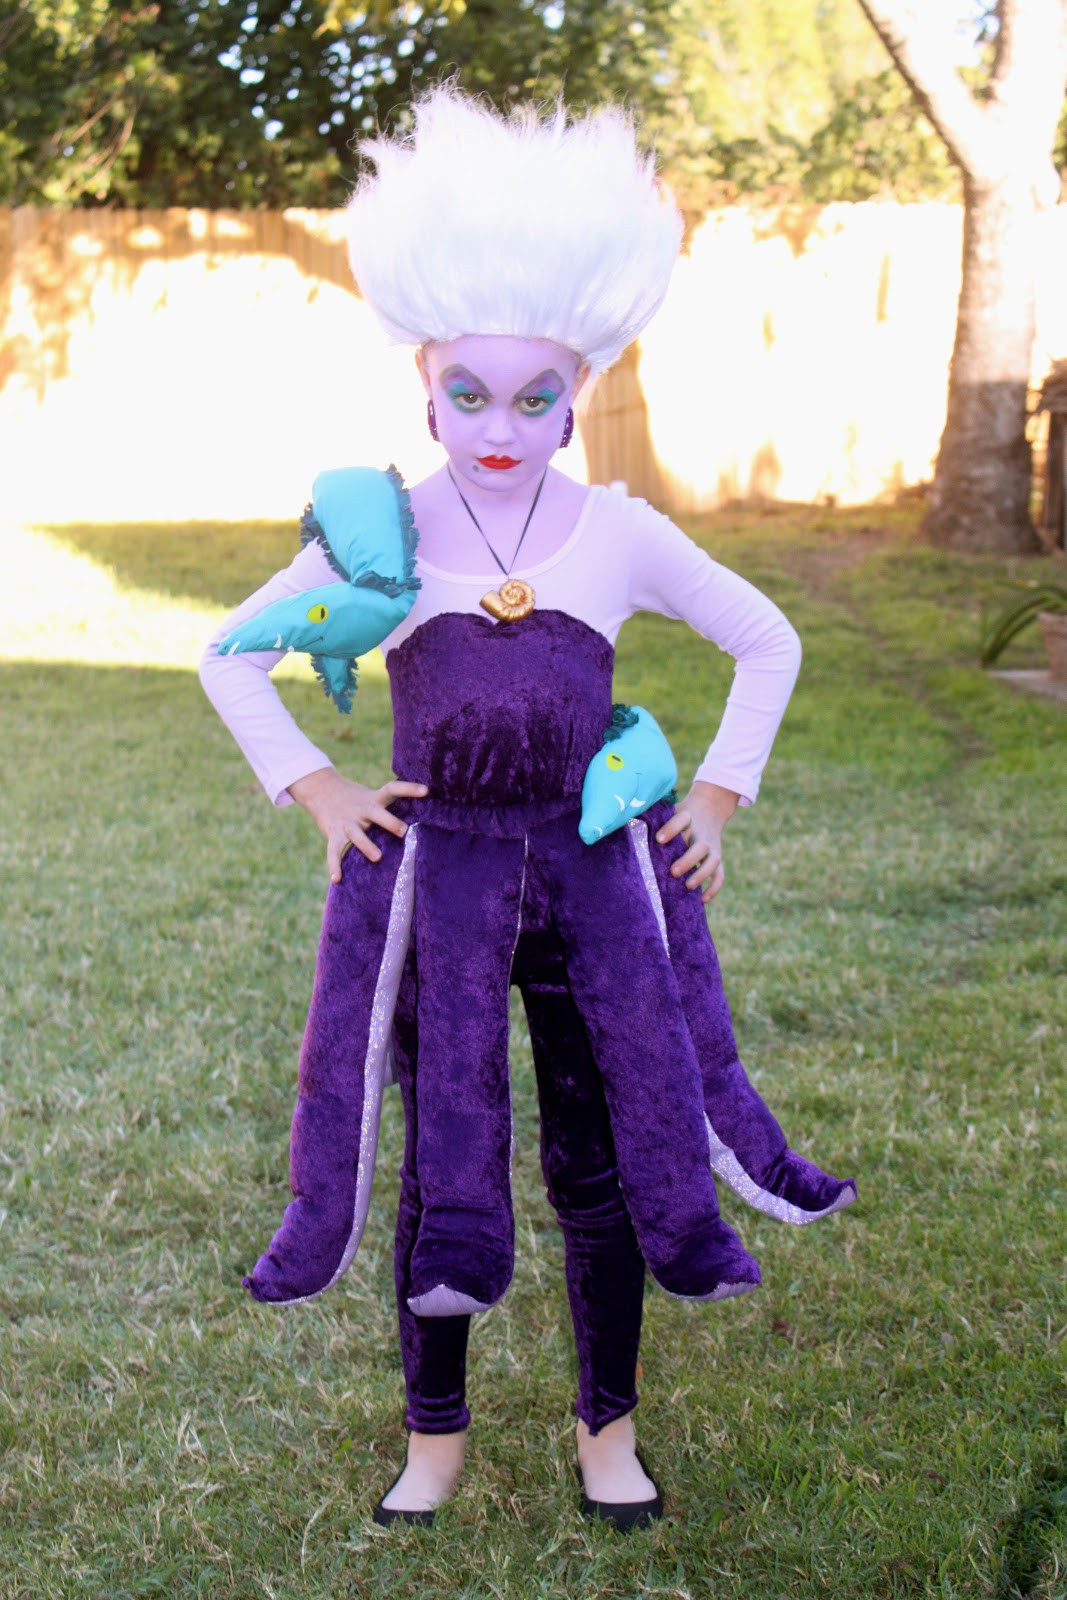 Best ideas about DIY Ursula Costume . Save or Pin sweet savannah Ursula The Sea Witch & Wayne Campbell Now.